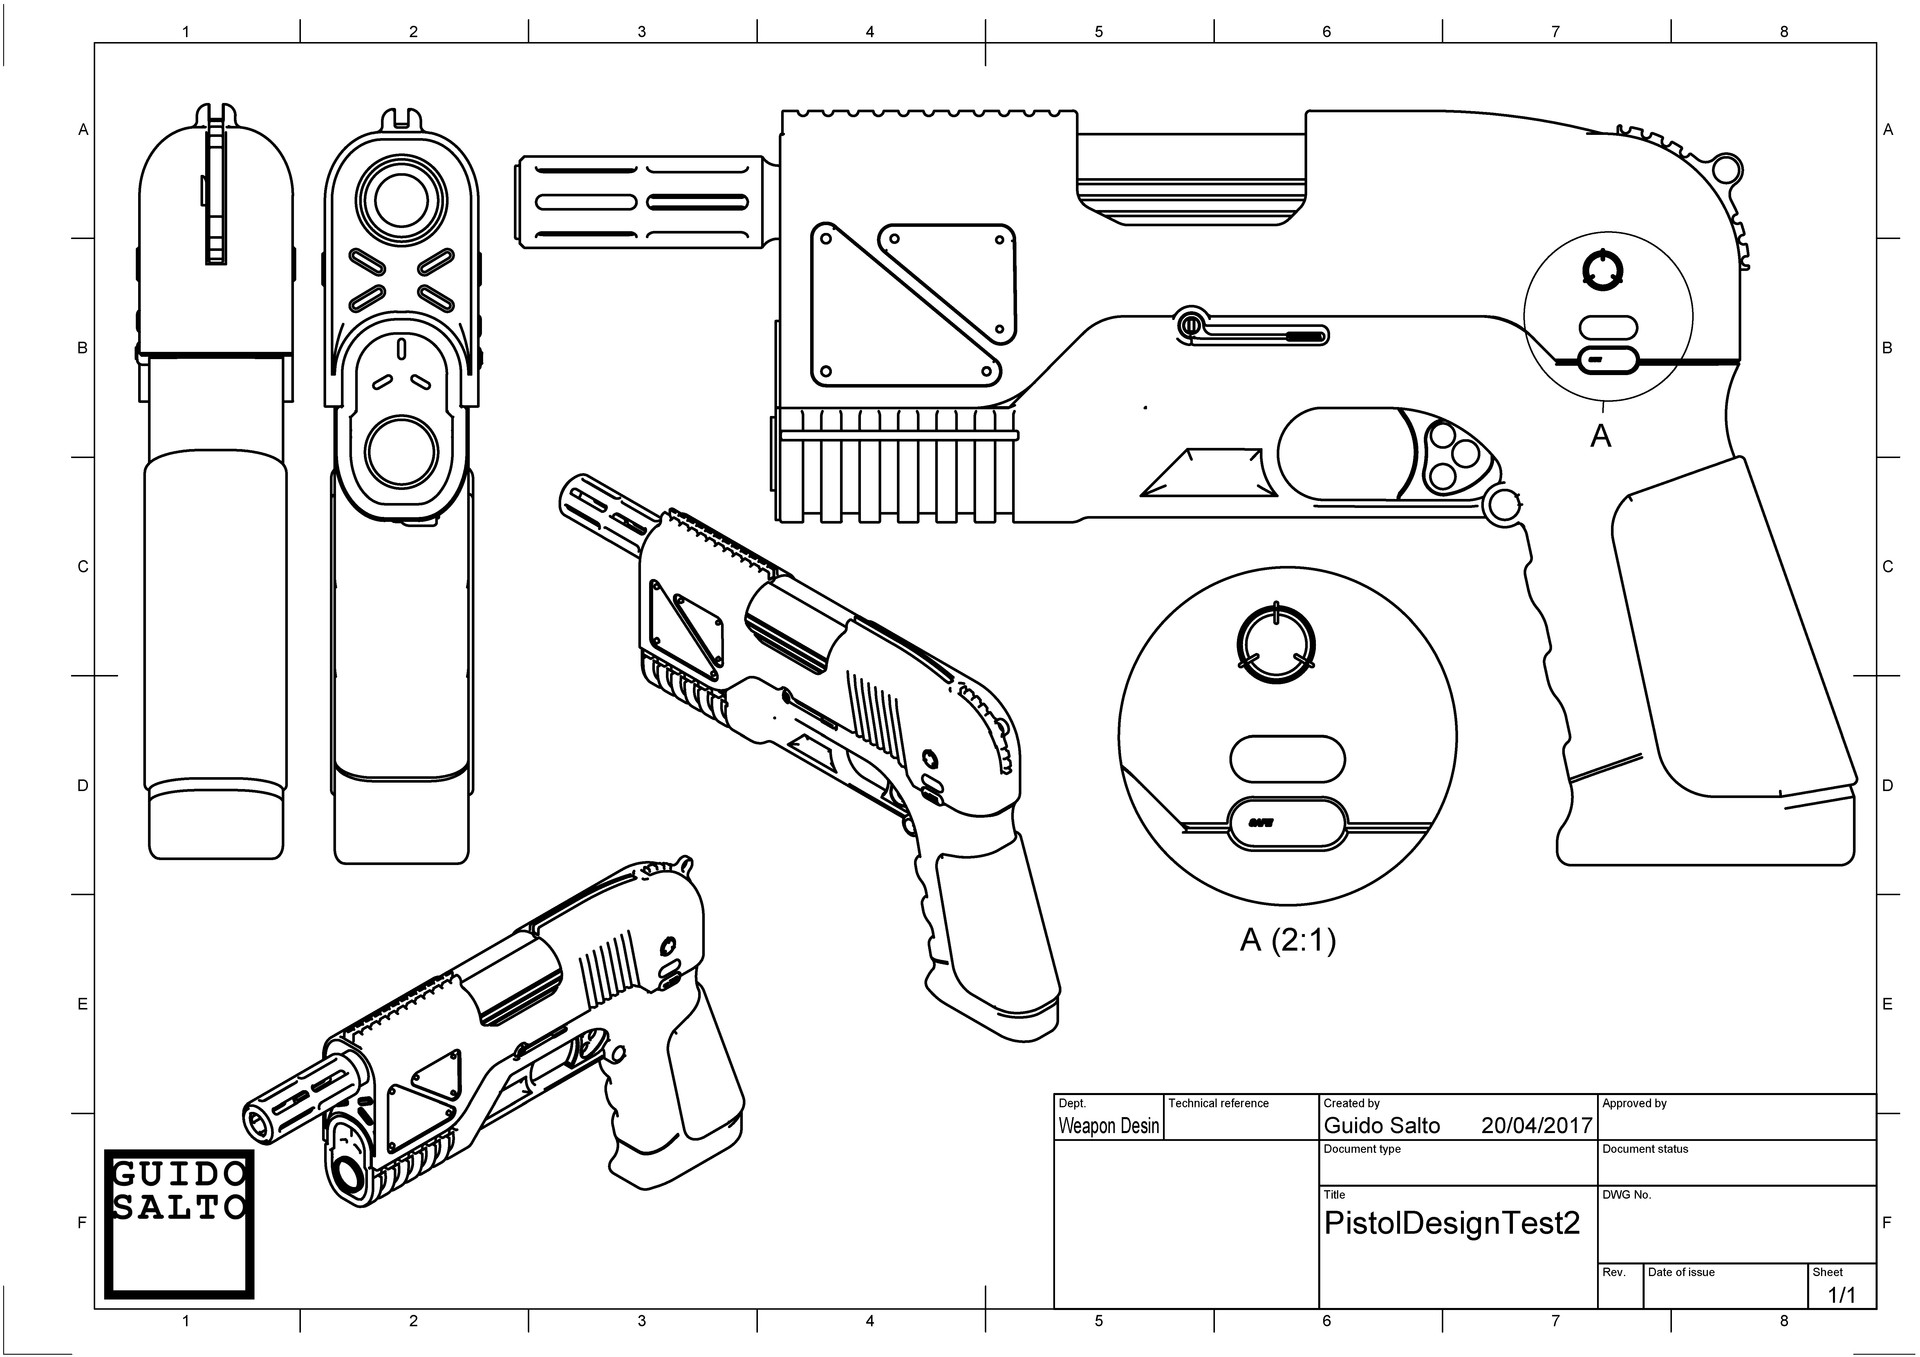 Guido salto pistoldesigntest2 drawing v0 sheet1